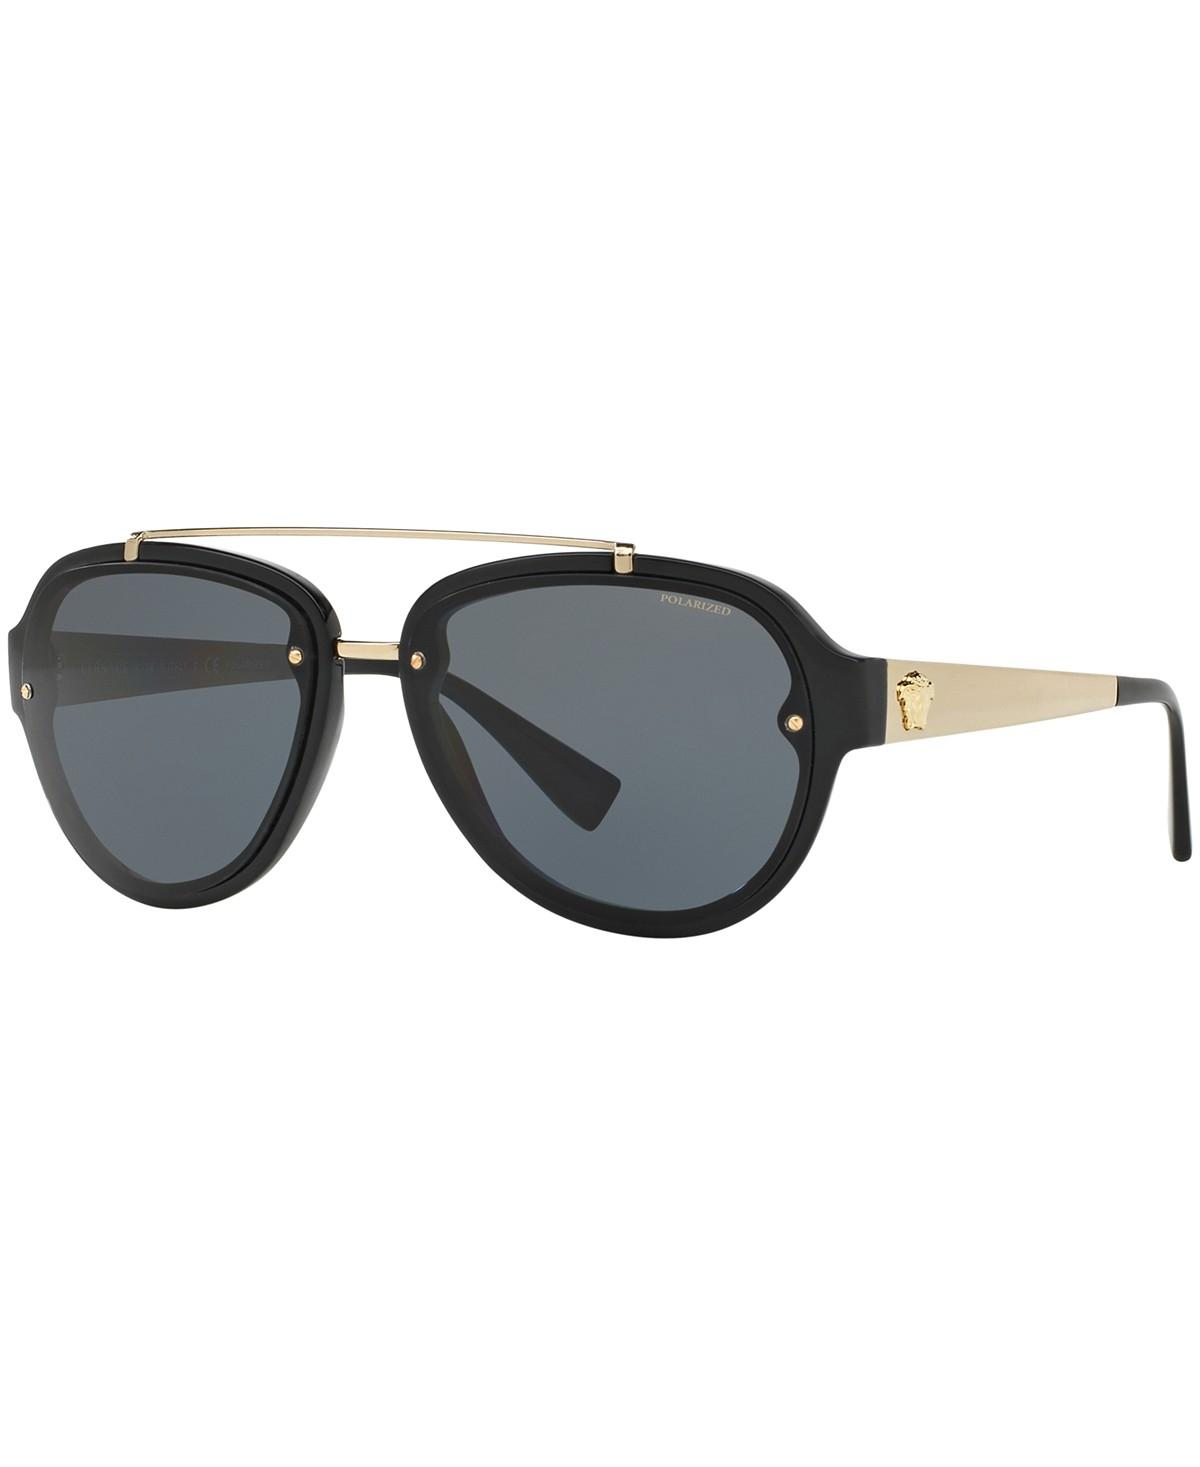 c467da435c4 Versace black gold aviator polarized ve sunglasses jpg 245x300 Versace  aviator sunglasses